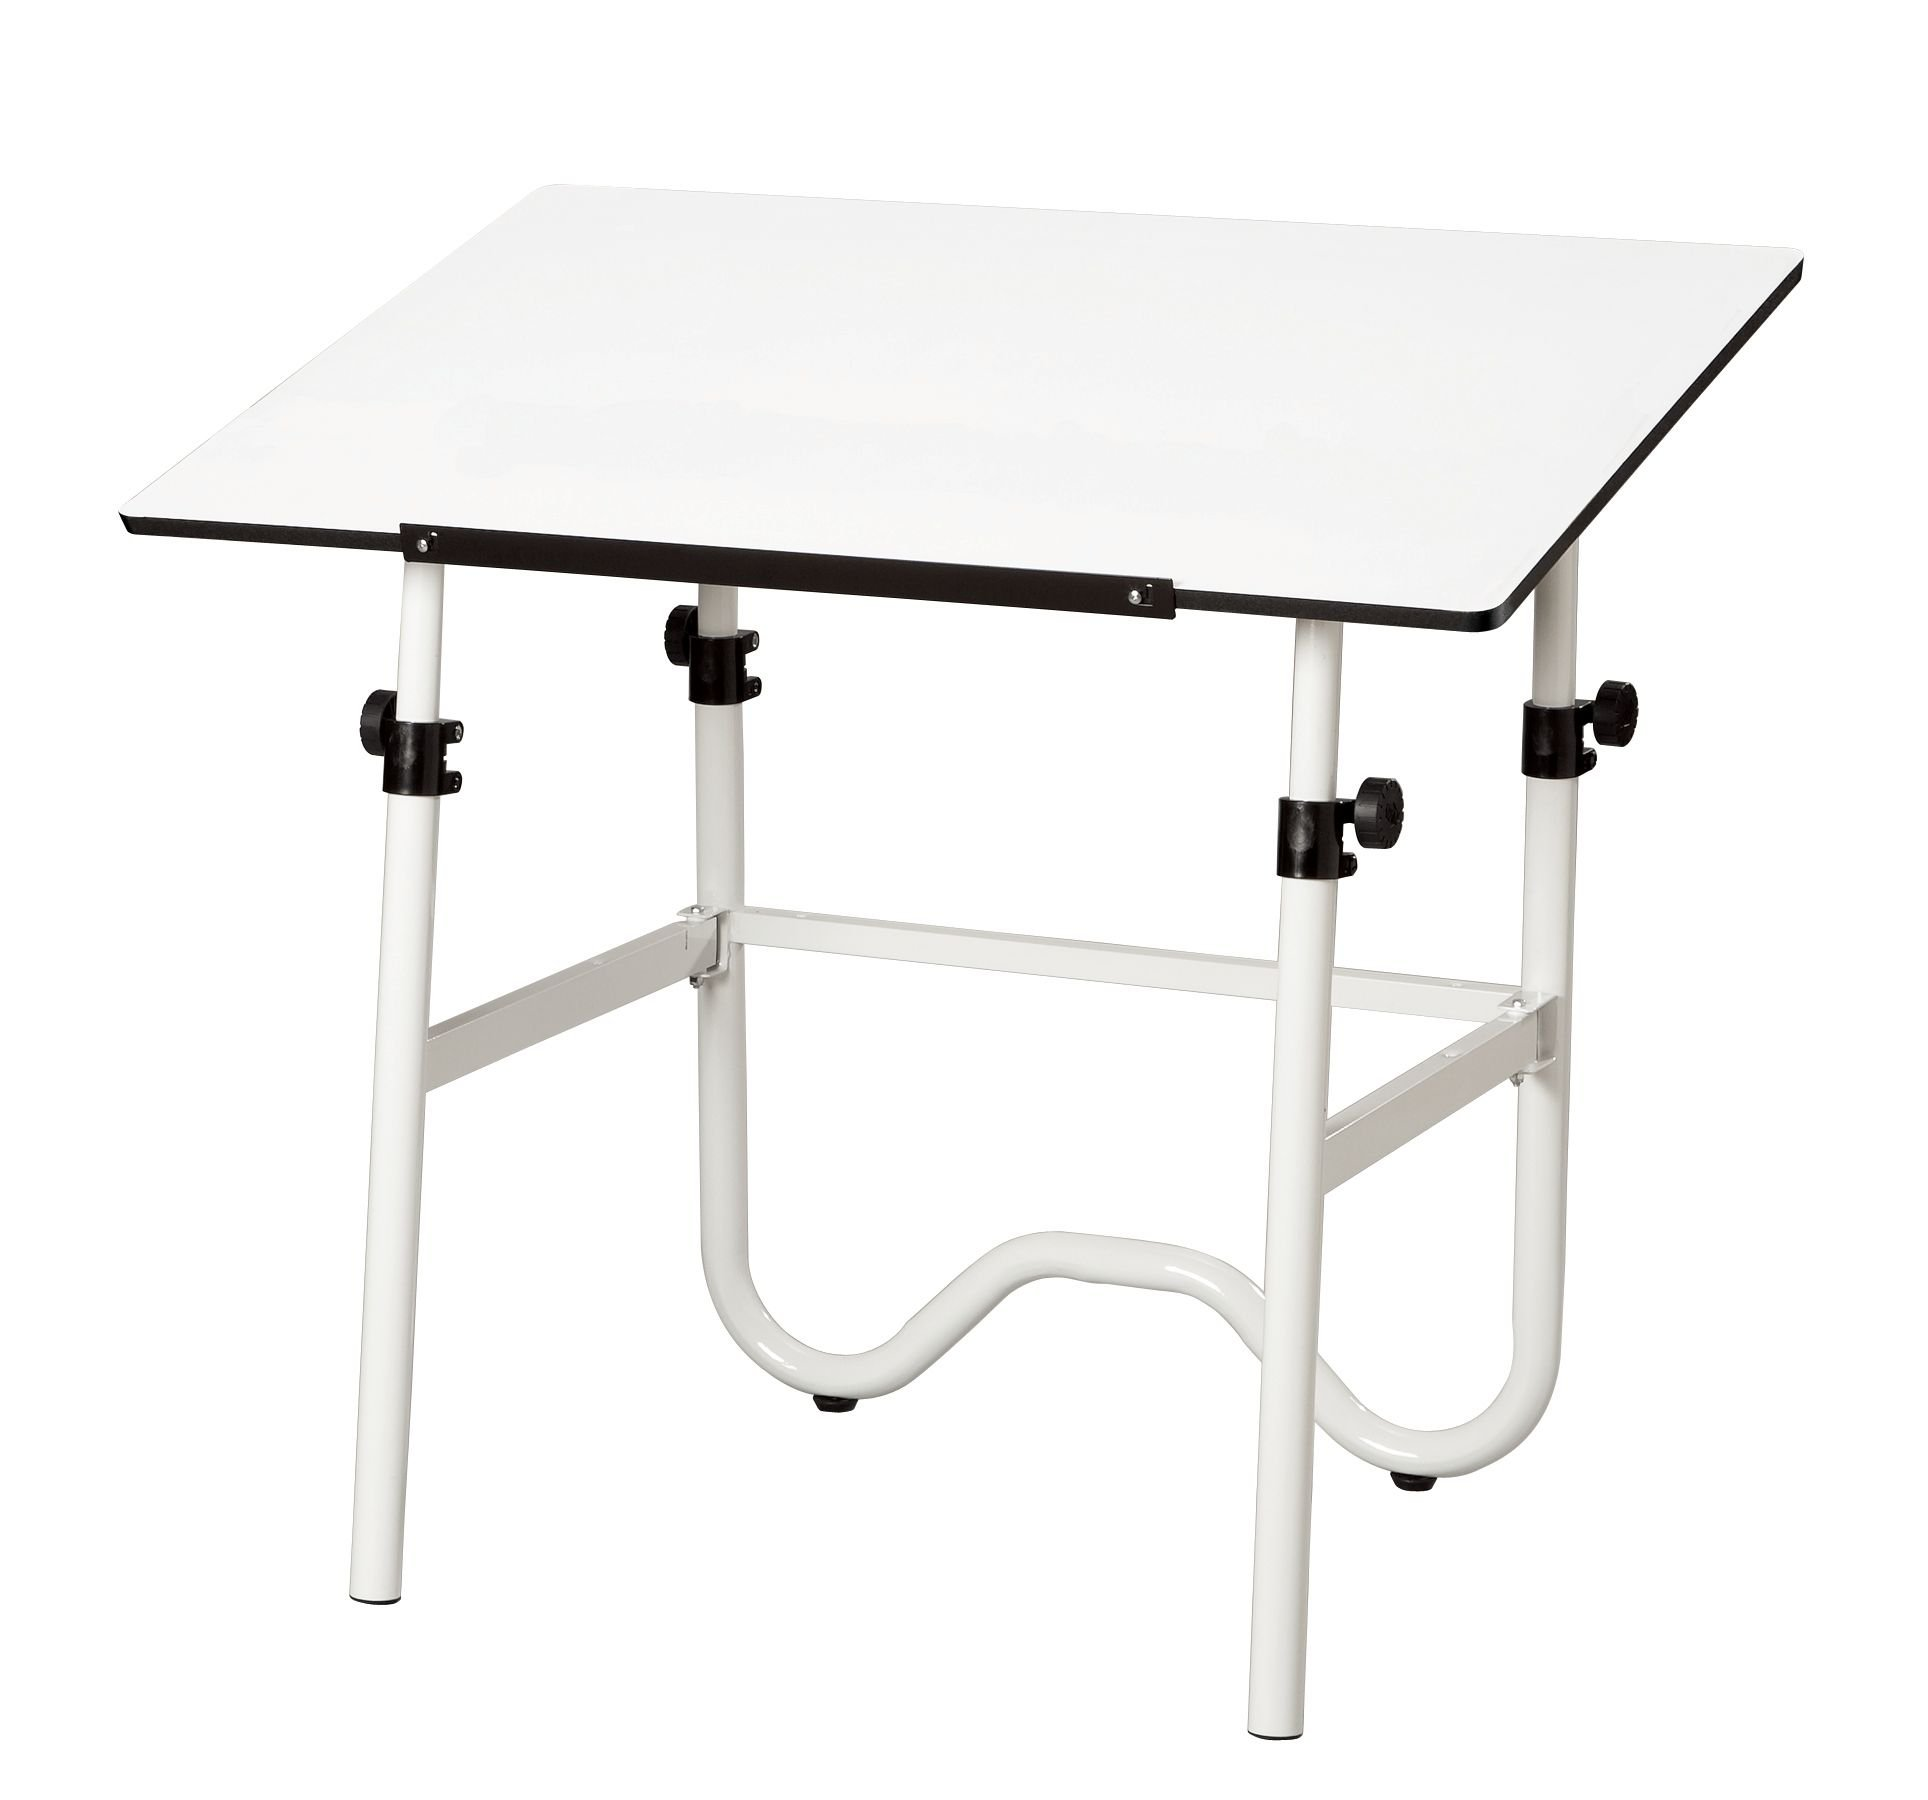 Onyx Drafting Table w Tubular Steel White Base & Adjustable Legs (30 in. L x 42 in. W)